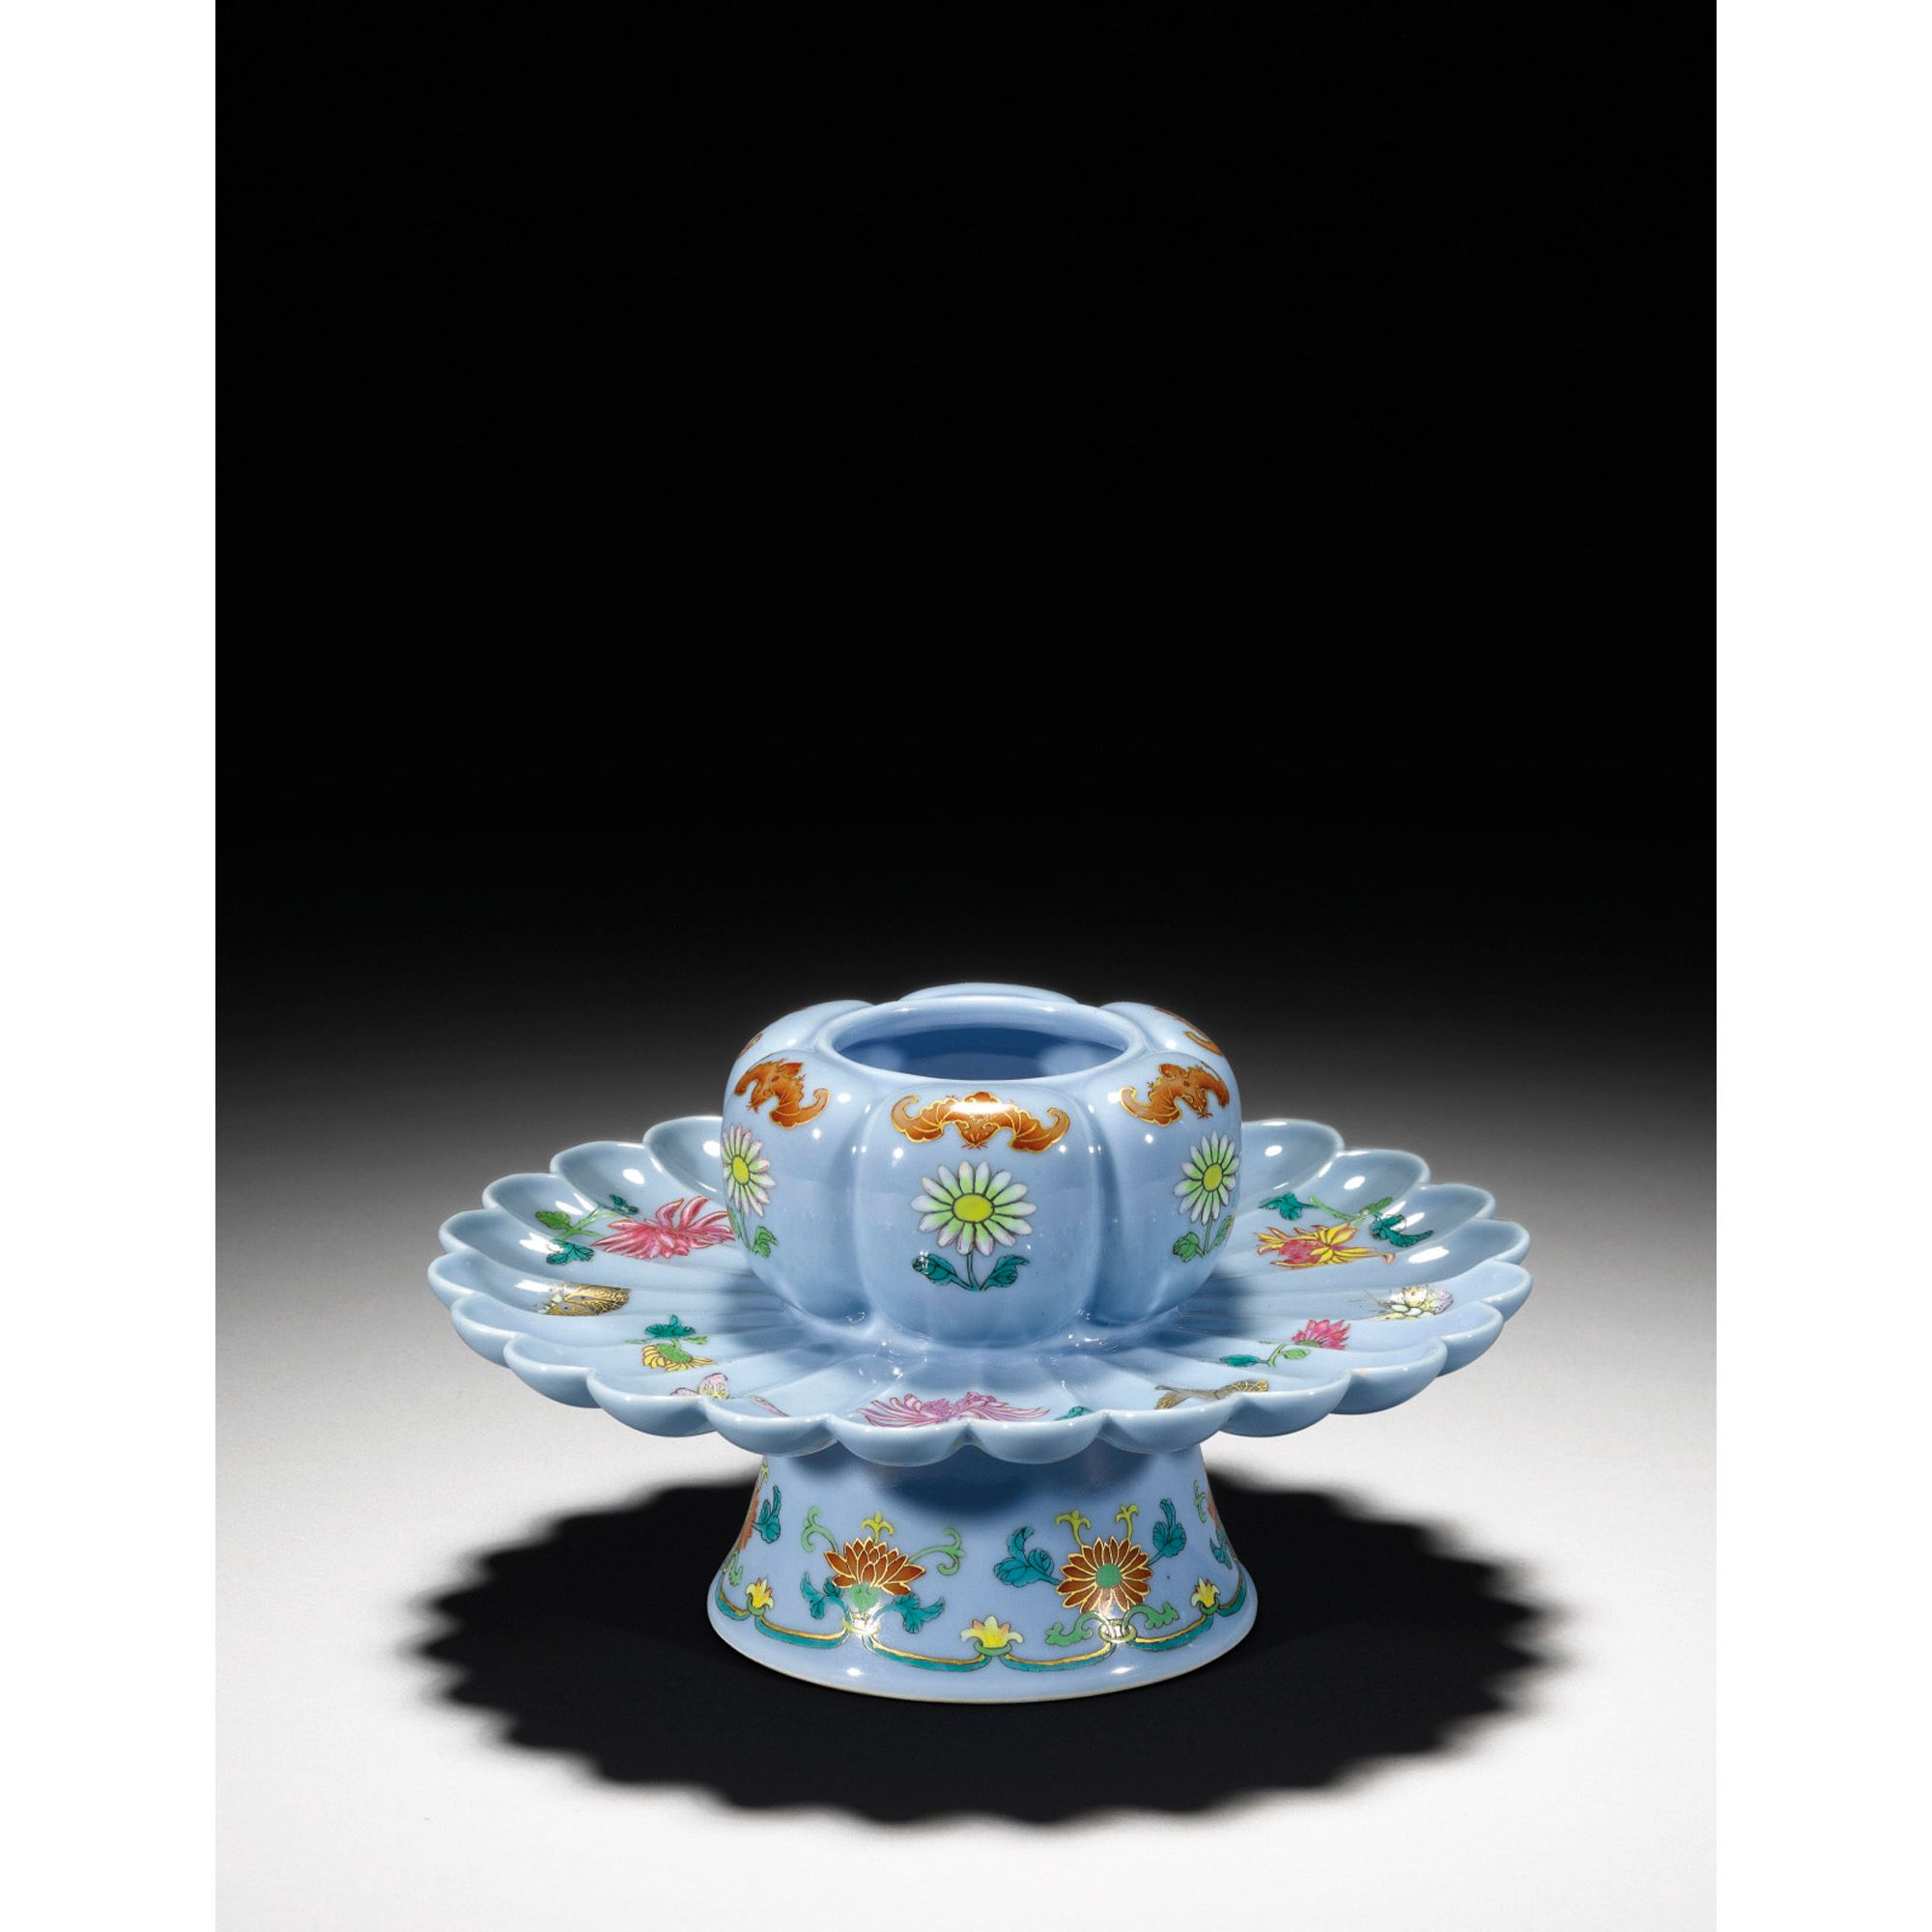 AN UNUSUAL FAMILLE-ROSE LAVENDER-GROUND CUP HOLDER QING DYNASTY, 18TH CENTURYchinese works of art | sotheby's hk0344lot5rkw2en